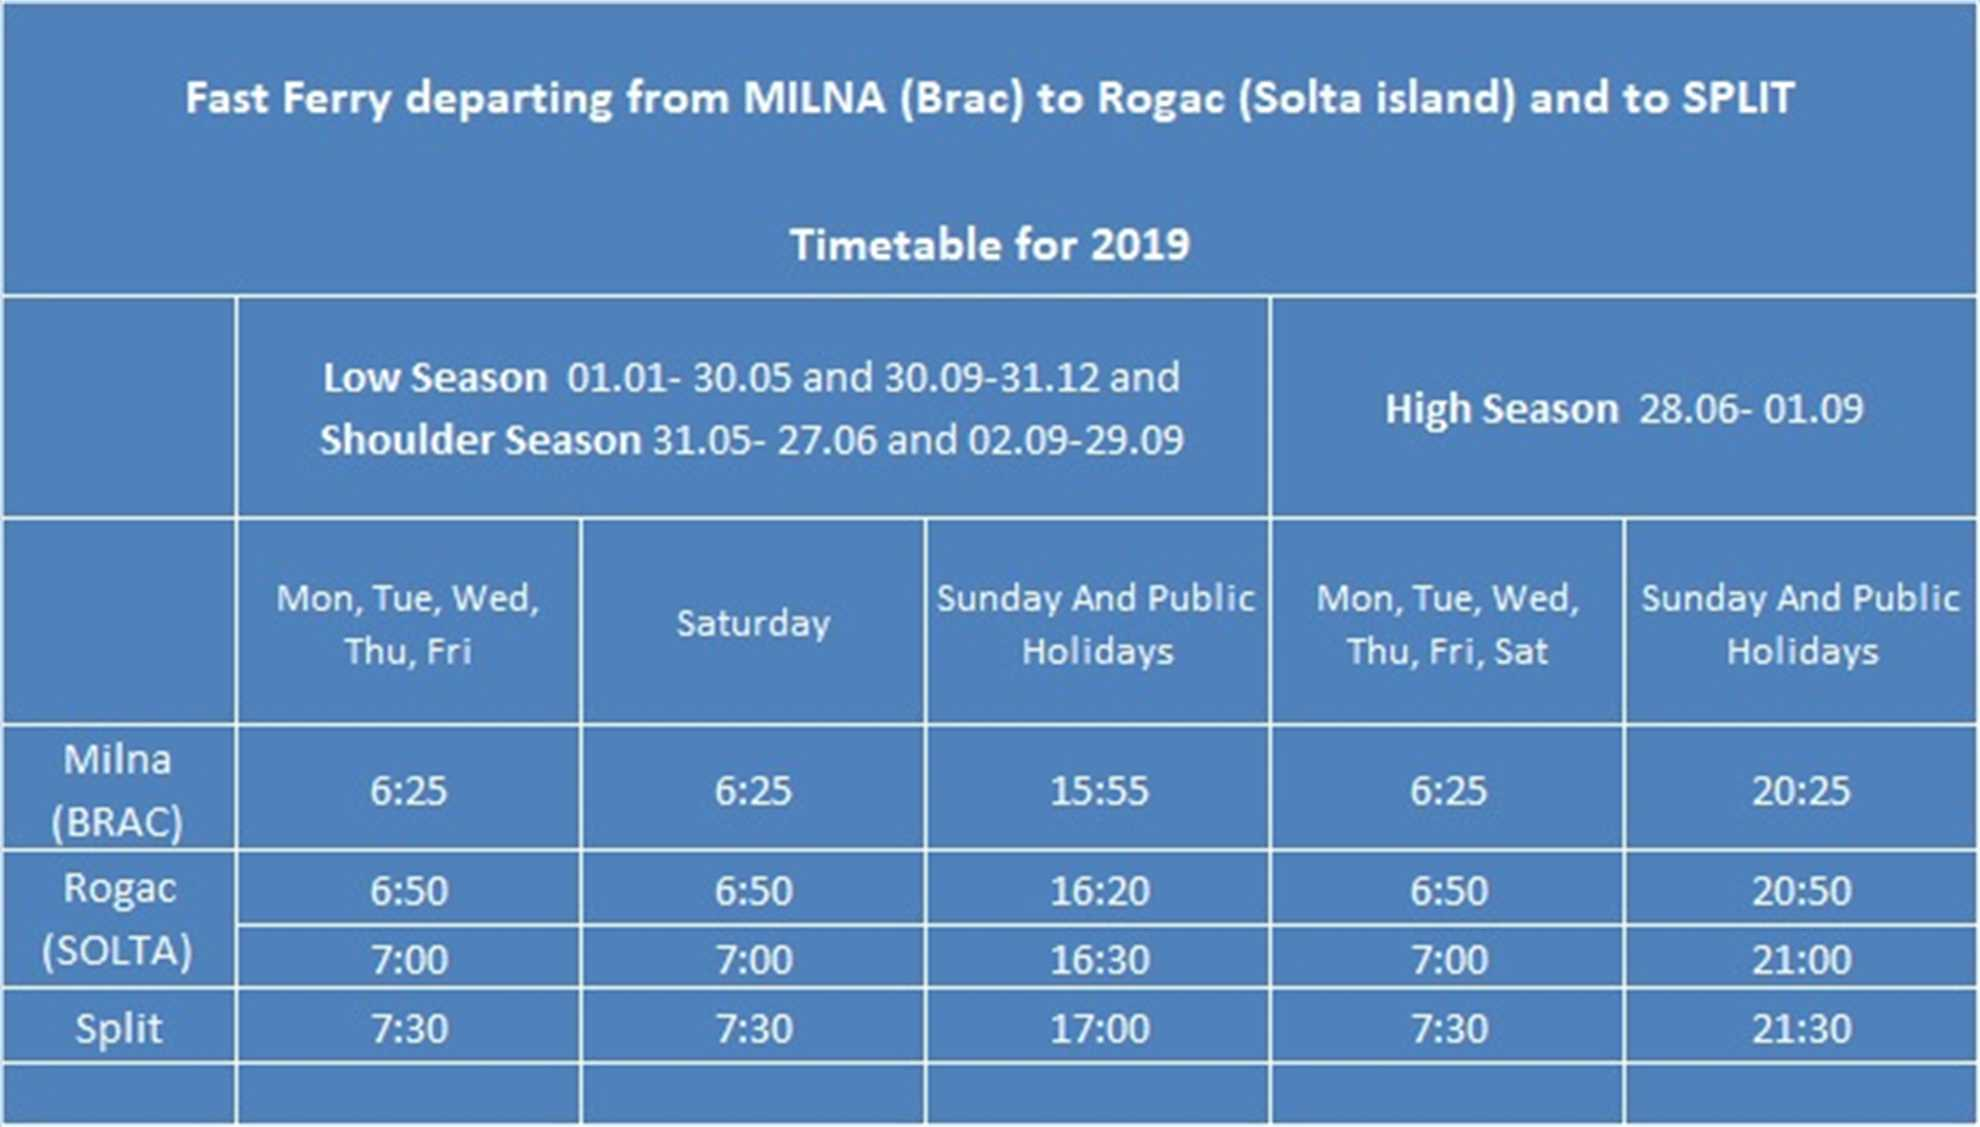 The timetable for the fast ferry from Milna (Brac) to Rogac (Solta) and to Split in 2019: